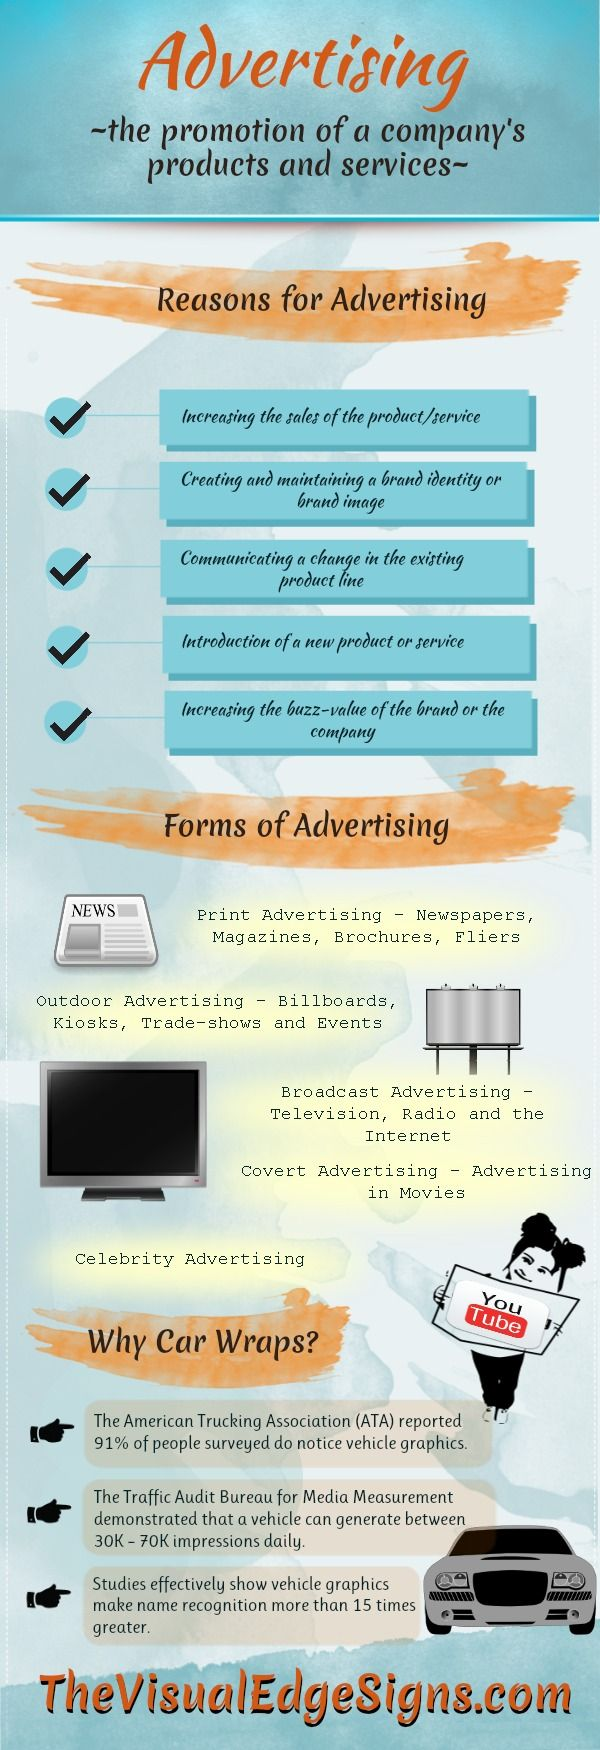 Advertising Techniques - 13 Most Common Techniques Used by the Advertisers